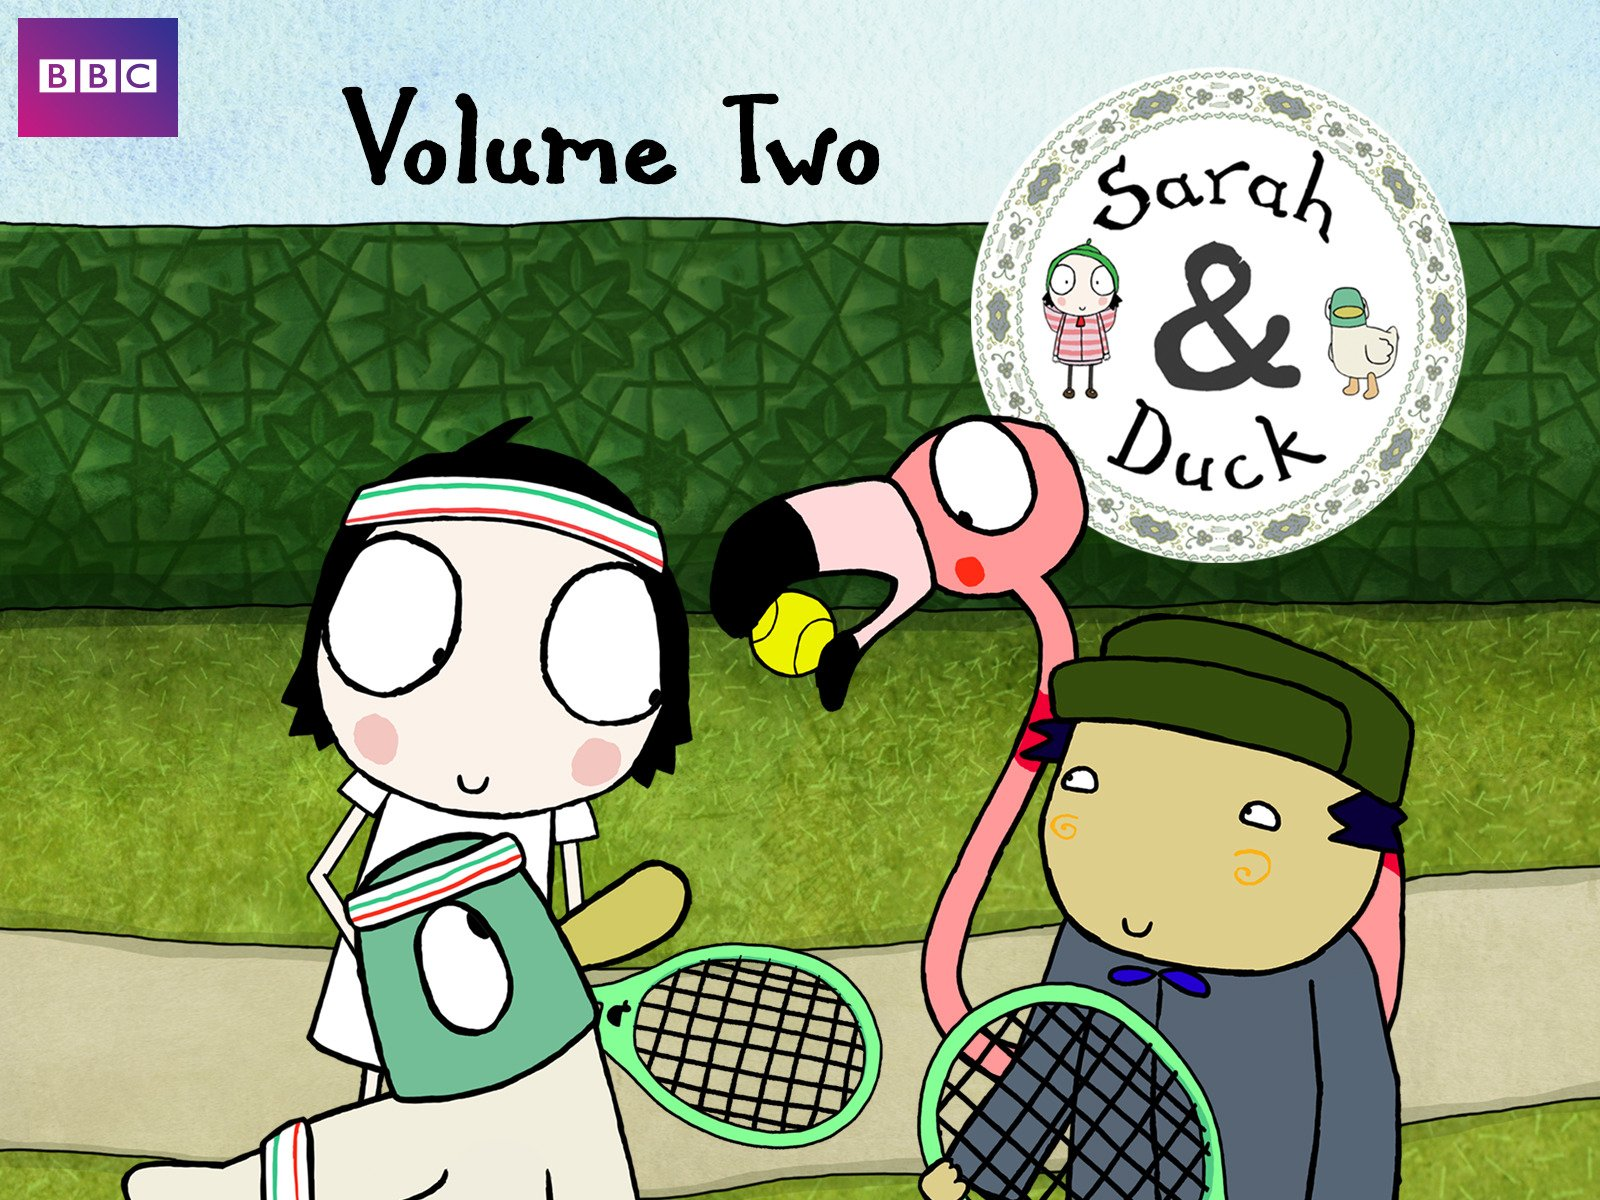 Sarah & Duck, Season 1, Volume 2 - Season 102